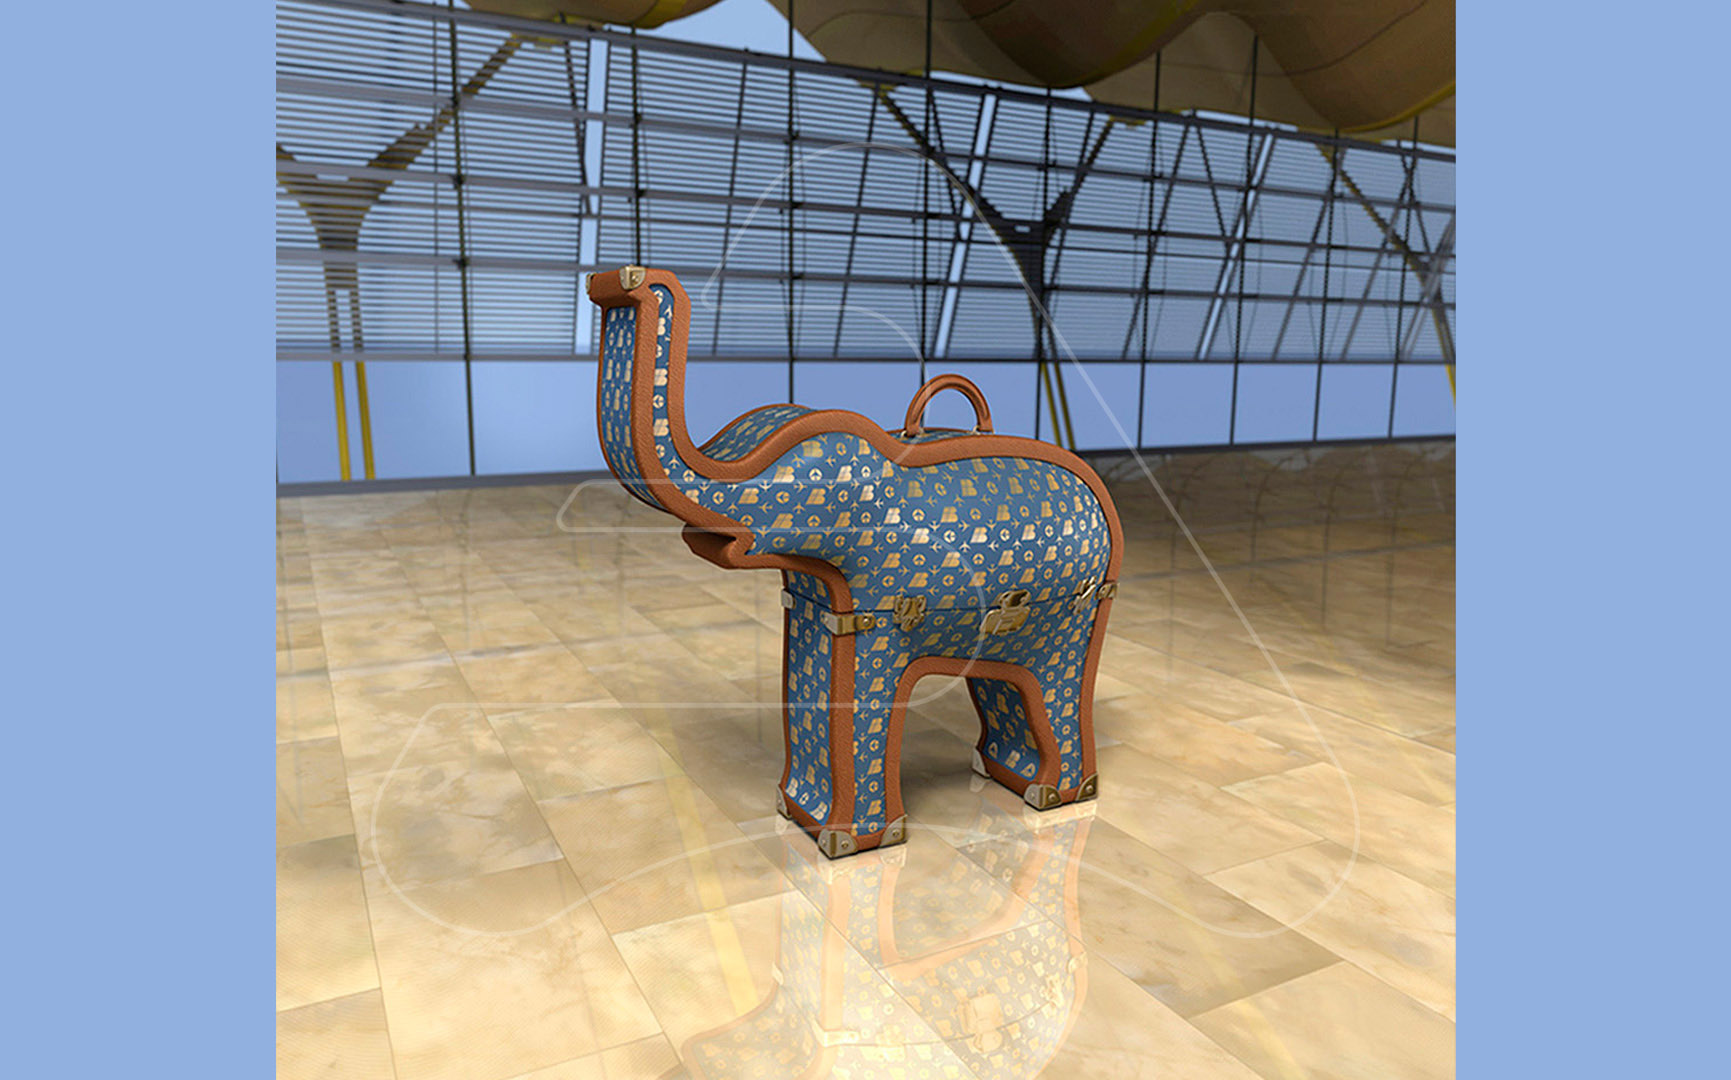 Suitcase Elephant / Iberia / Tapsa Madrid / 3D modeling and illustration